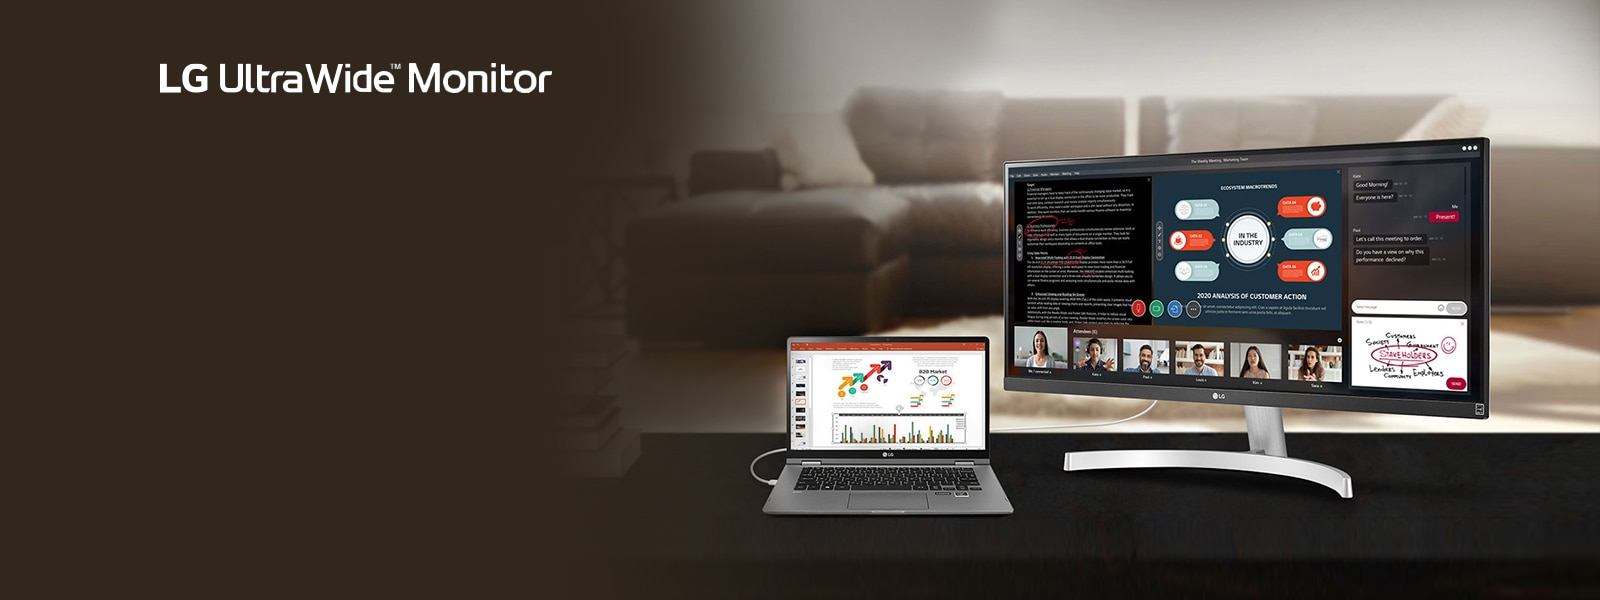 The image shows the LG UltraWide™ Monitor product with the wide screen splitted to 4 parts for an ongoing Webinar, consisting of a text document to discuss, a PowerPoint slide, 5 videos of each of 5 participants, and the chatting screen with an diagram drawing image to send.